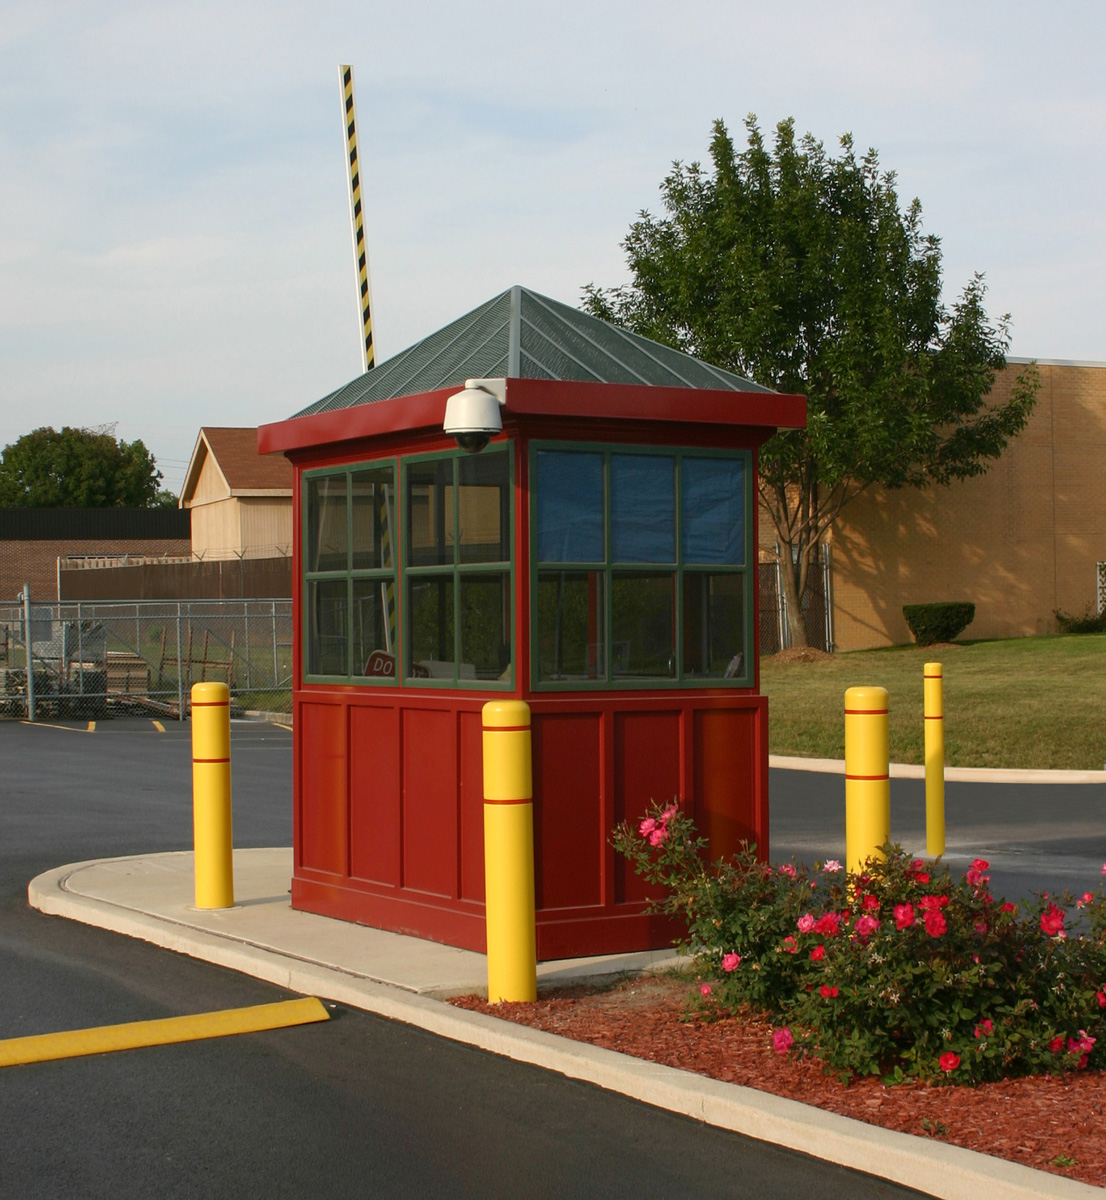 Parking Booth 0061-PRZ